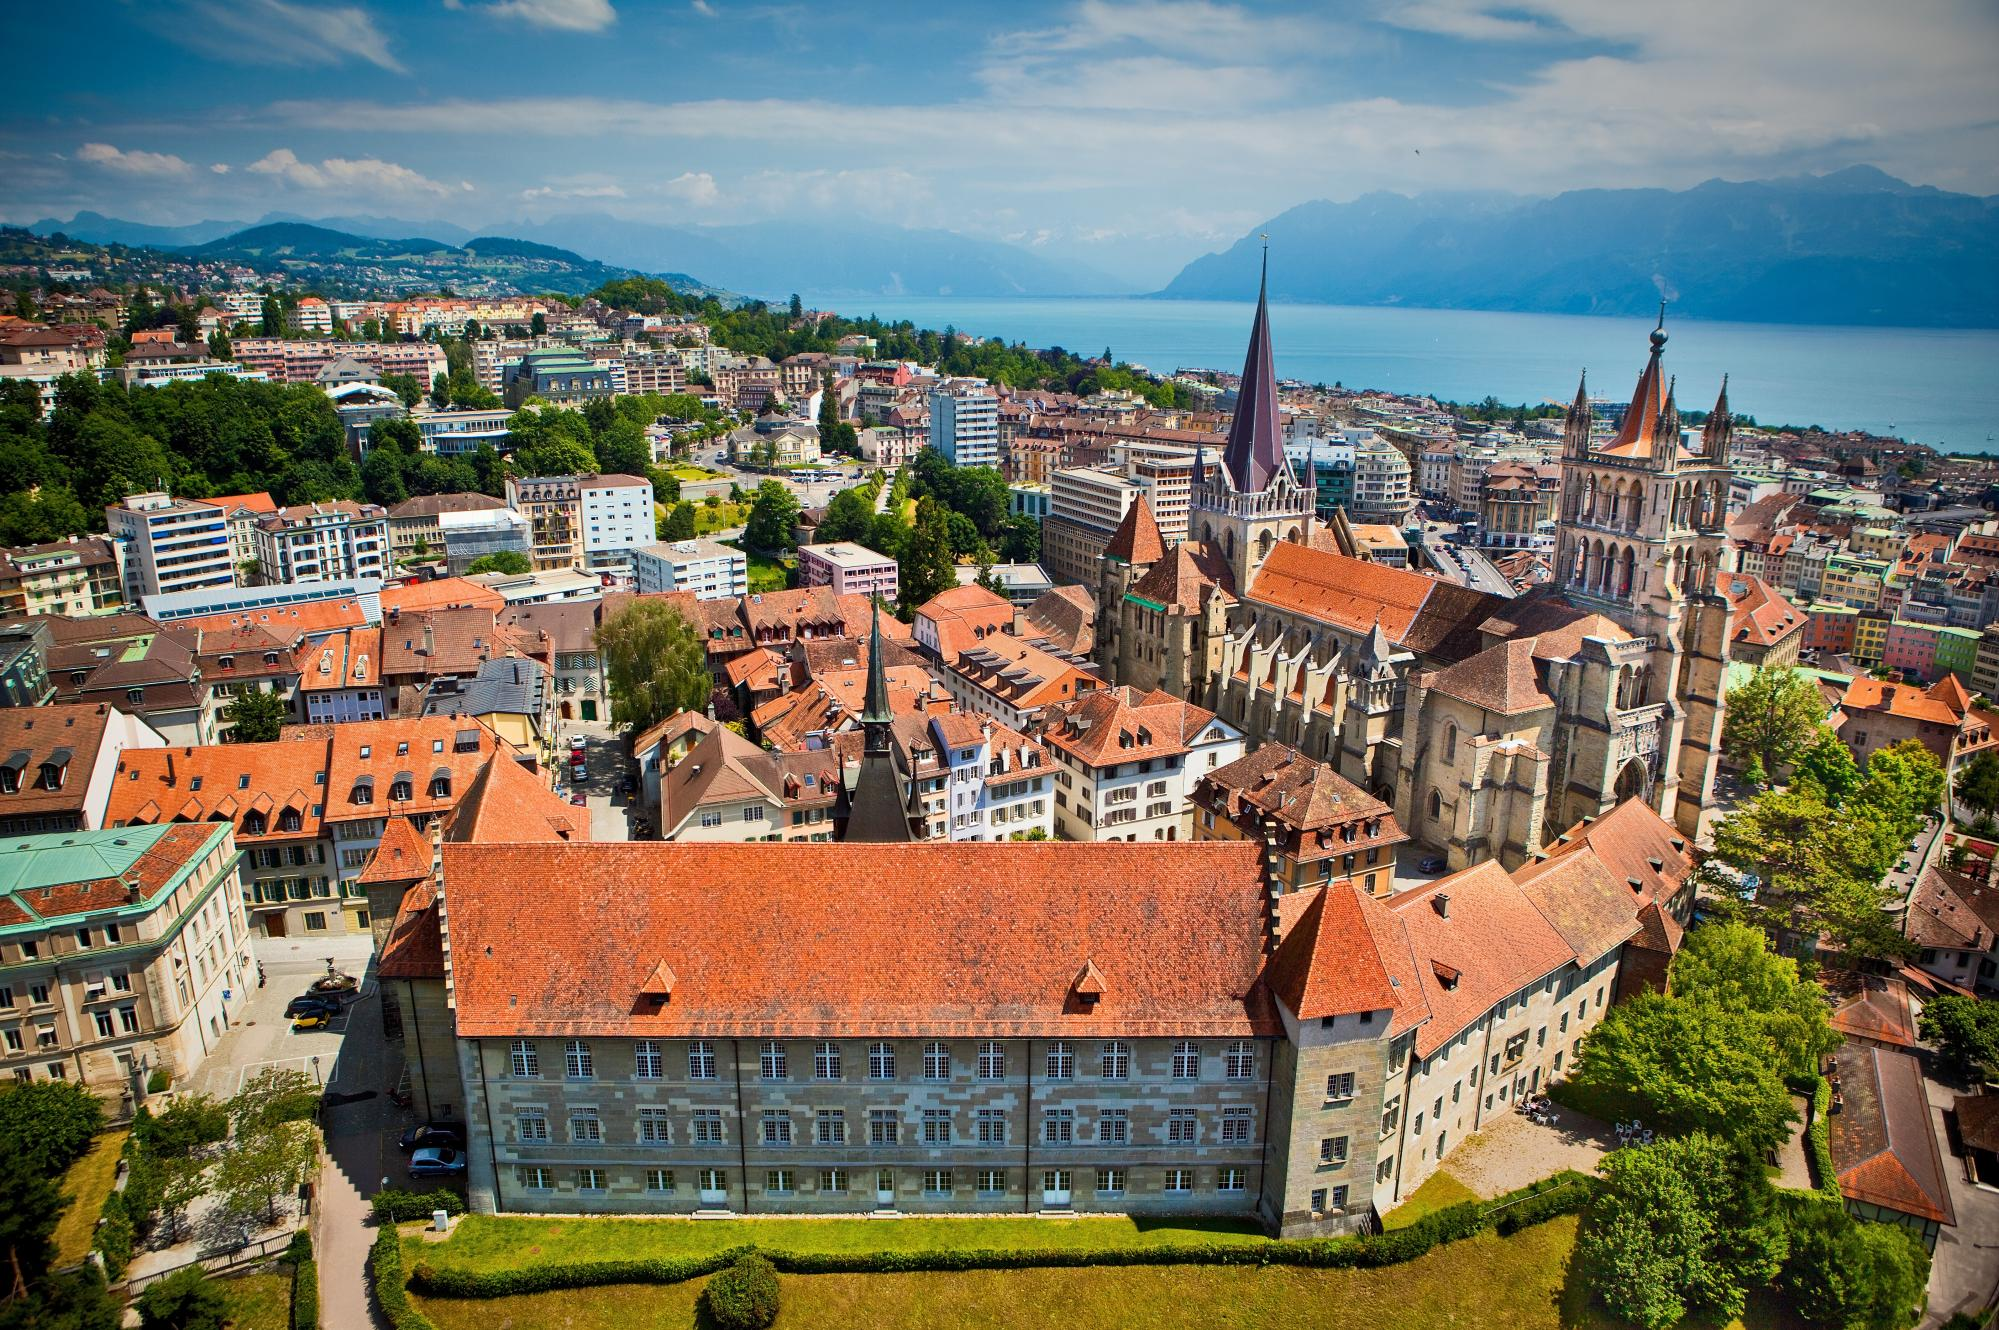 The Lausanne cathedrale